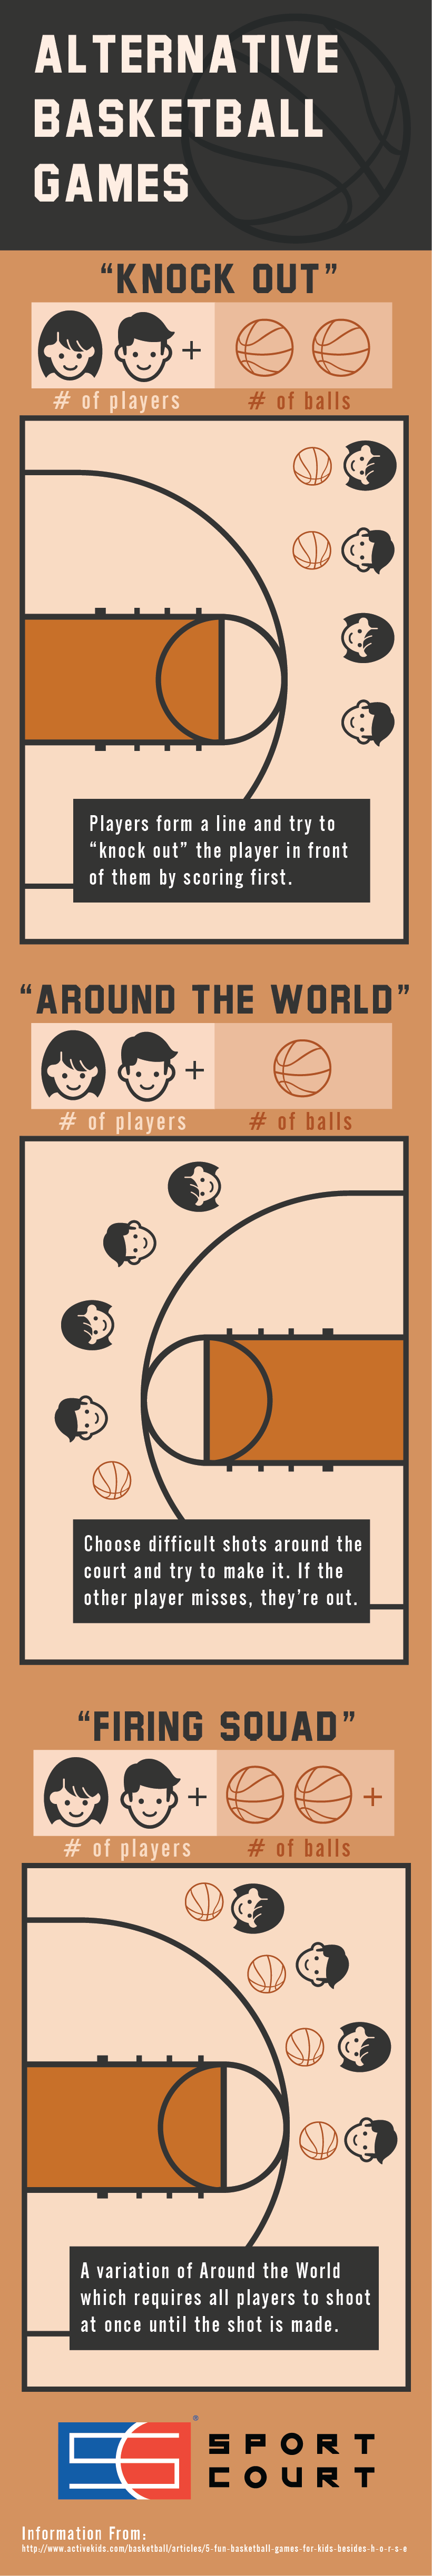 Best Alternative Basketball Games for Kids